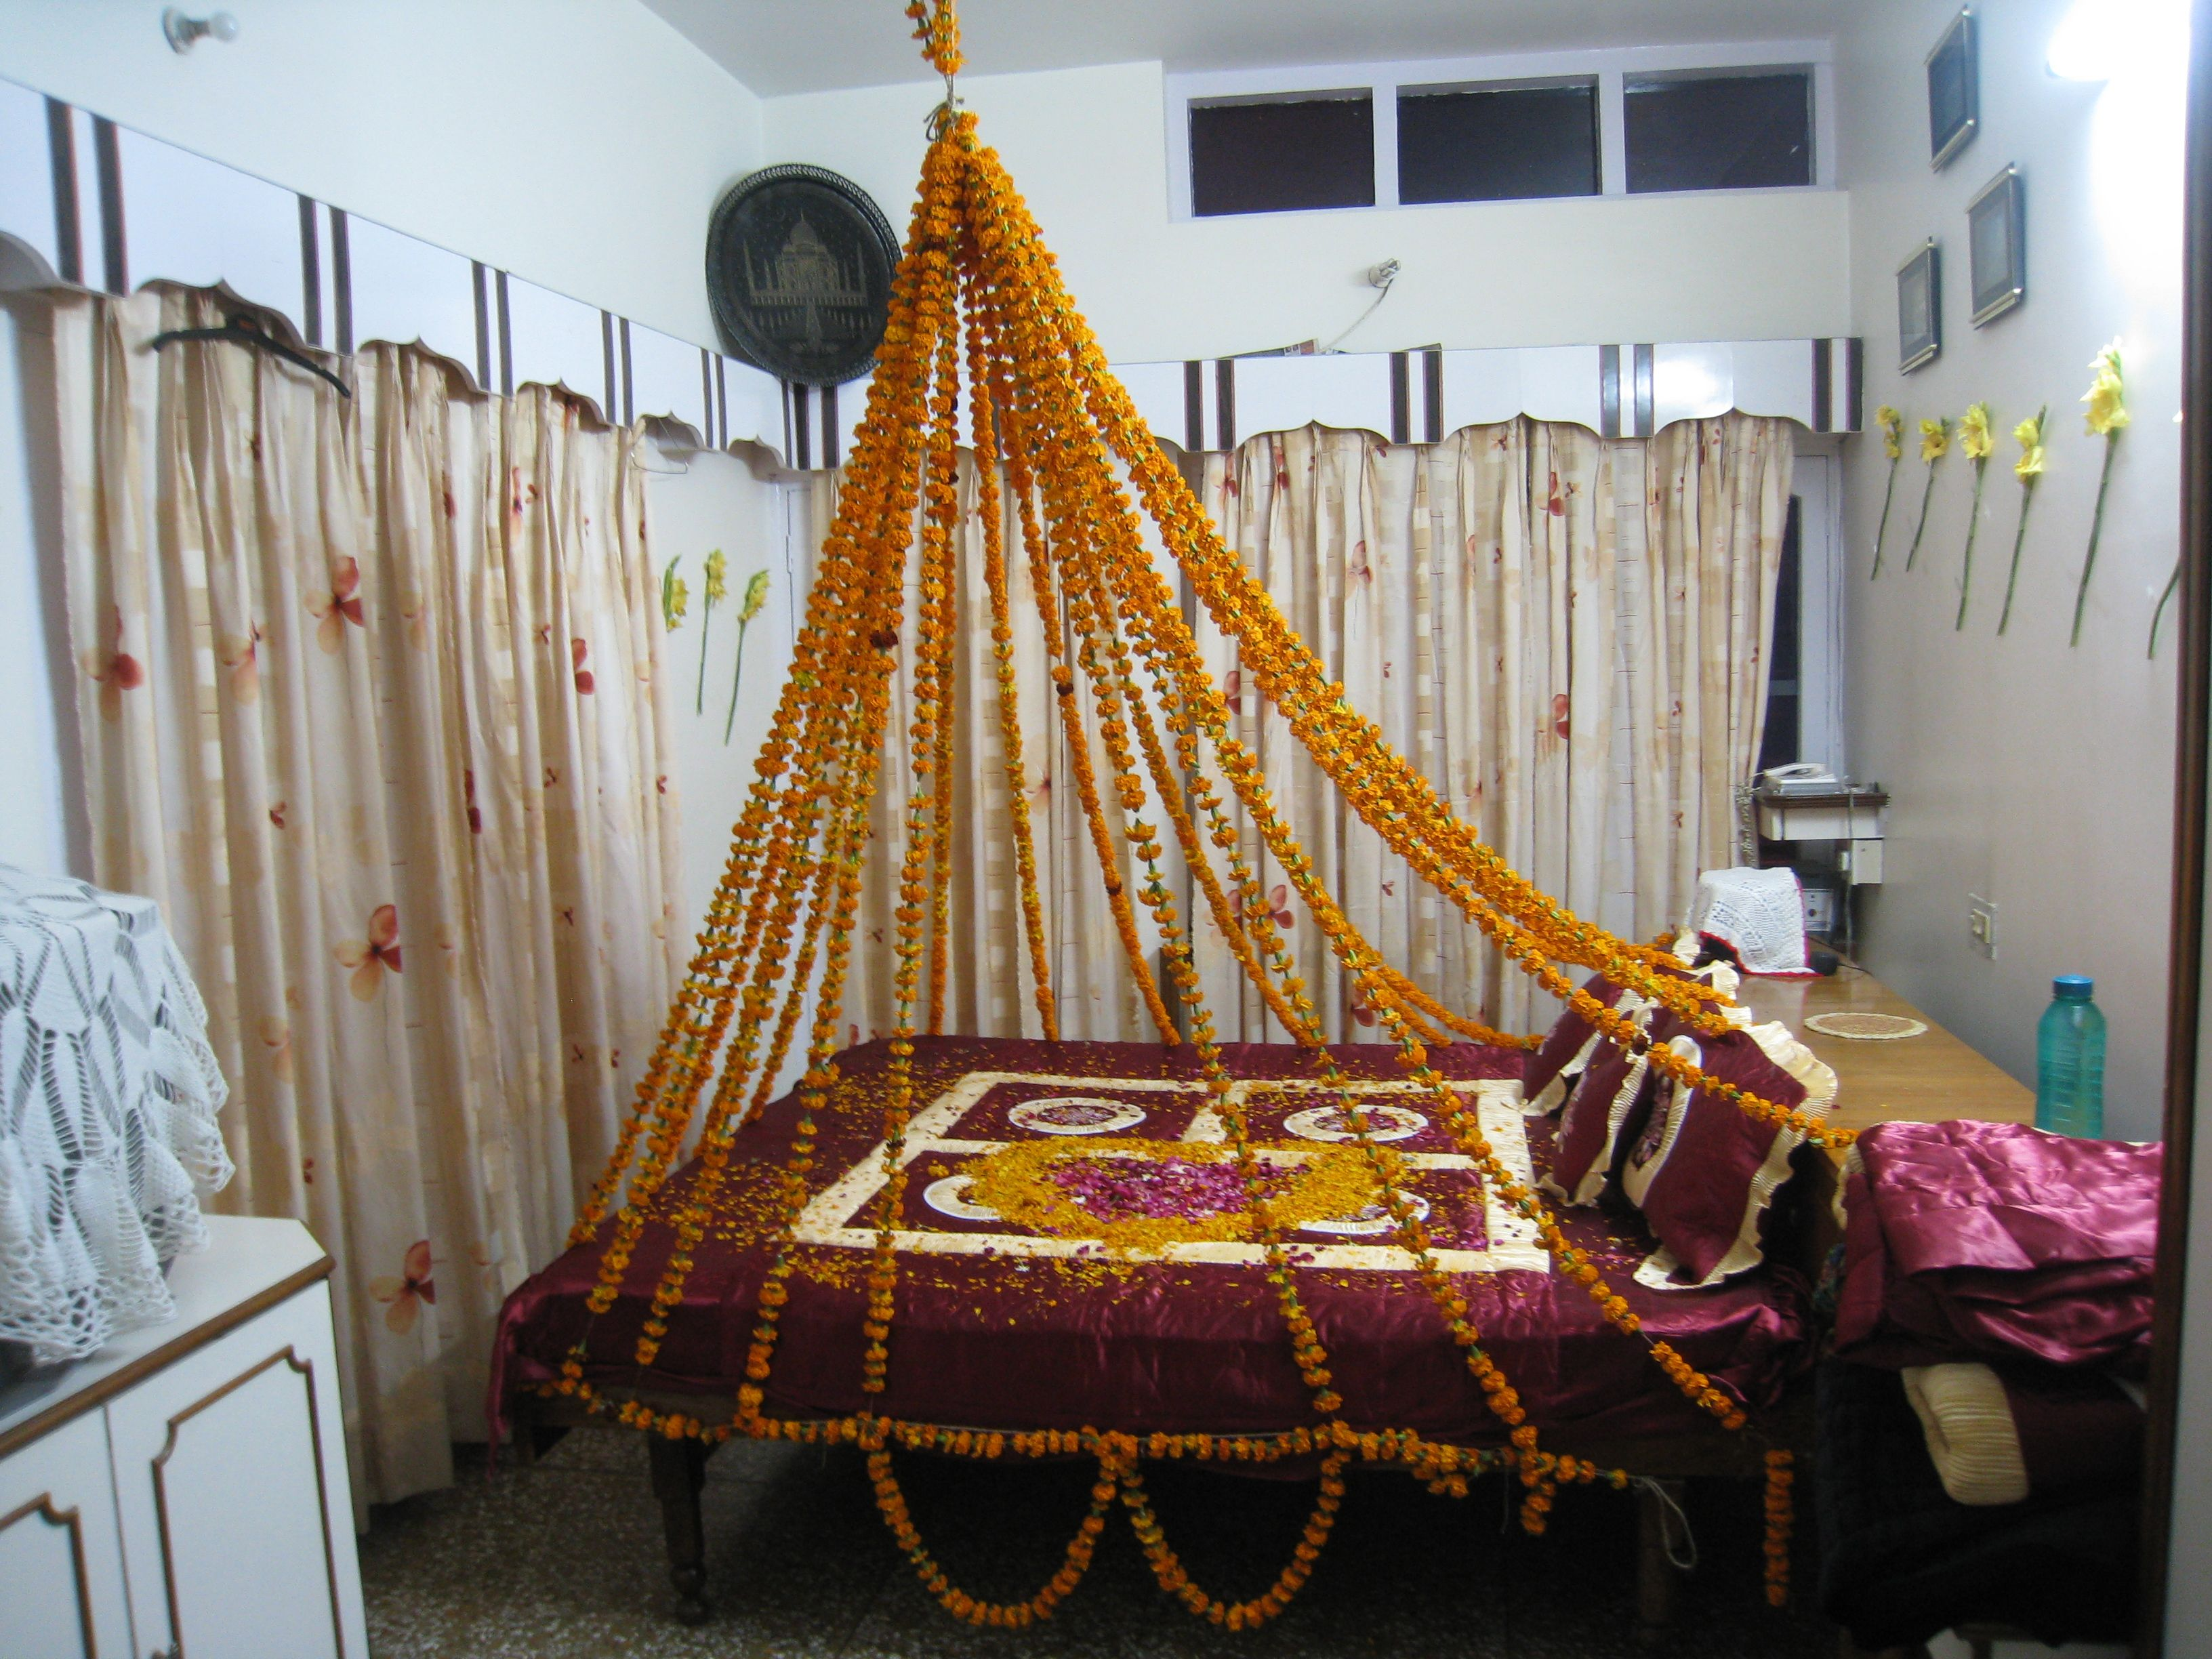 Indian wedding bedroom decoration ideas - Find This Pin And More On India Beauty